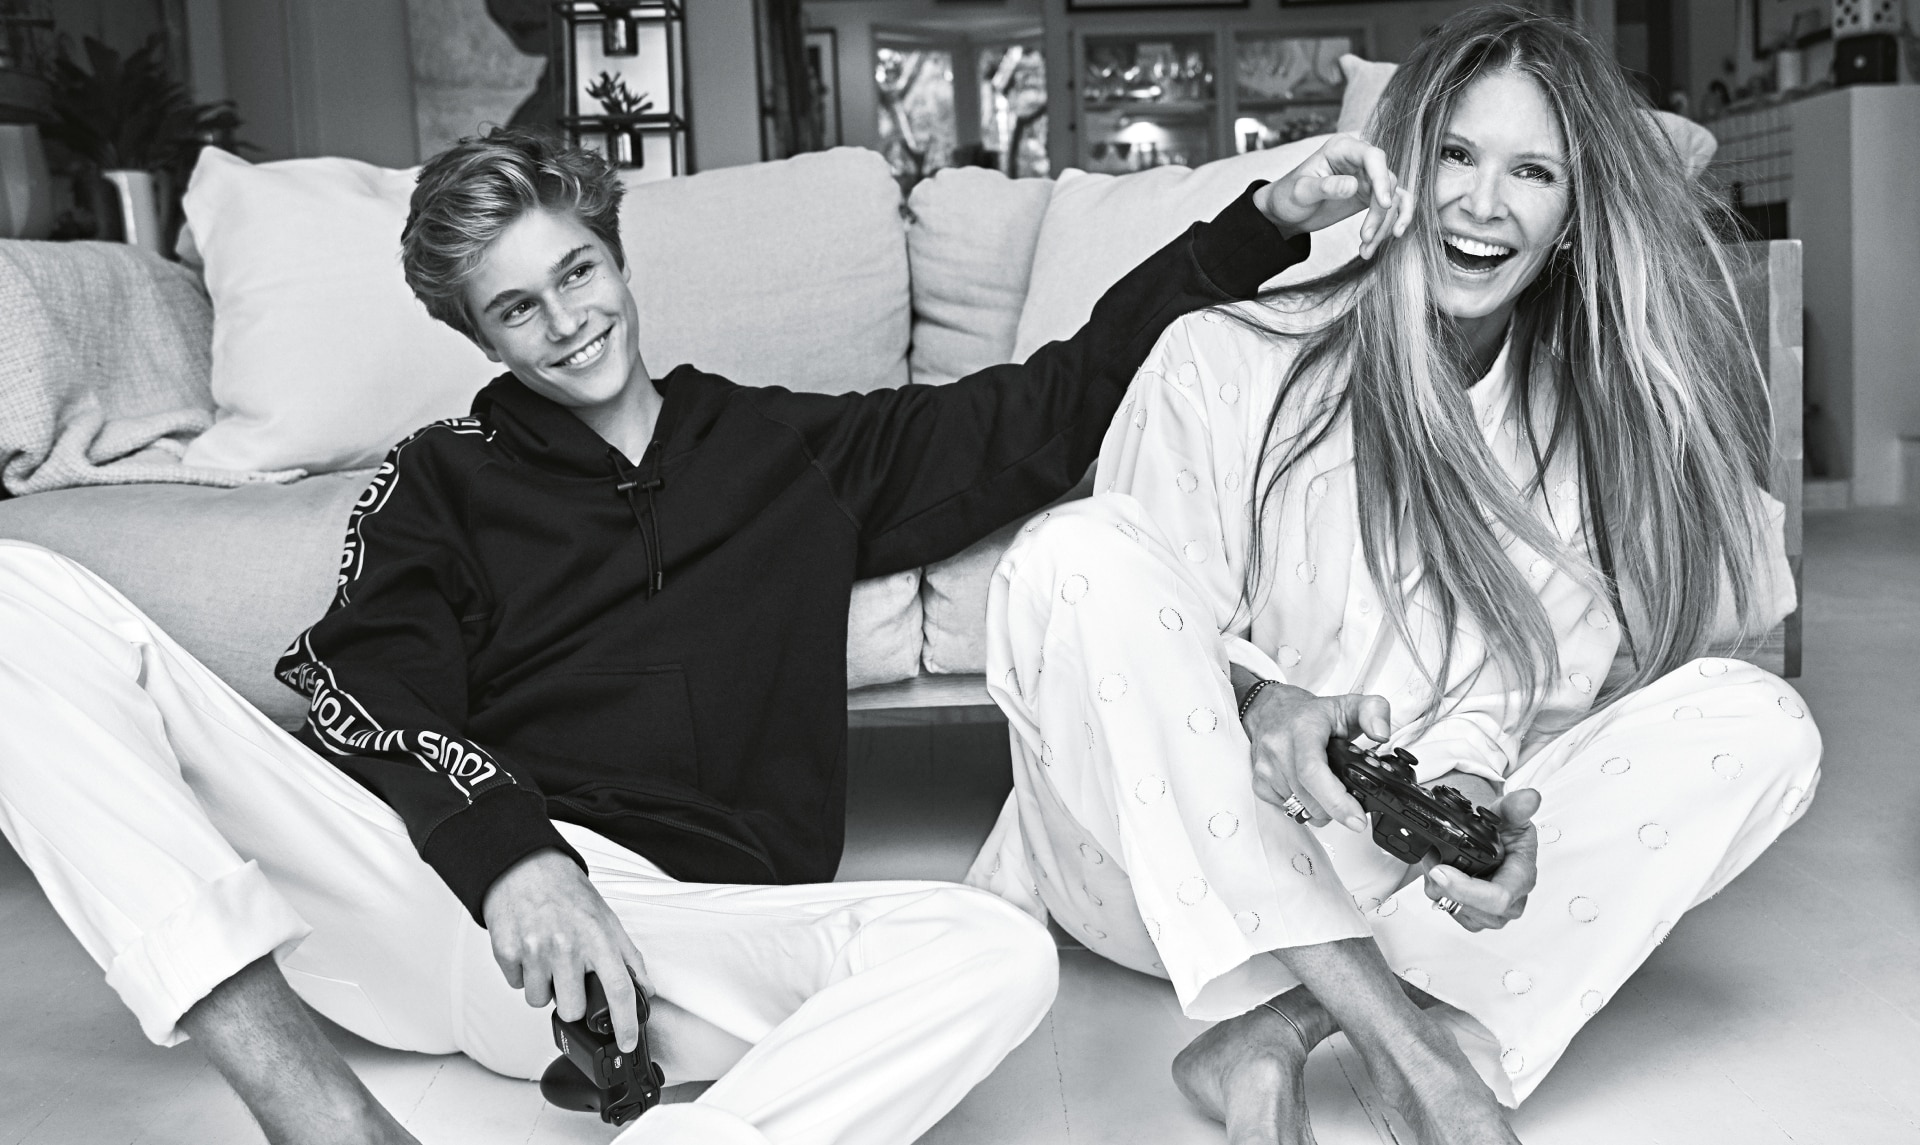 Elle Macpherson on her morning routine and the first-ever photoshoot with her sons